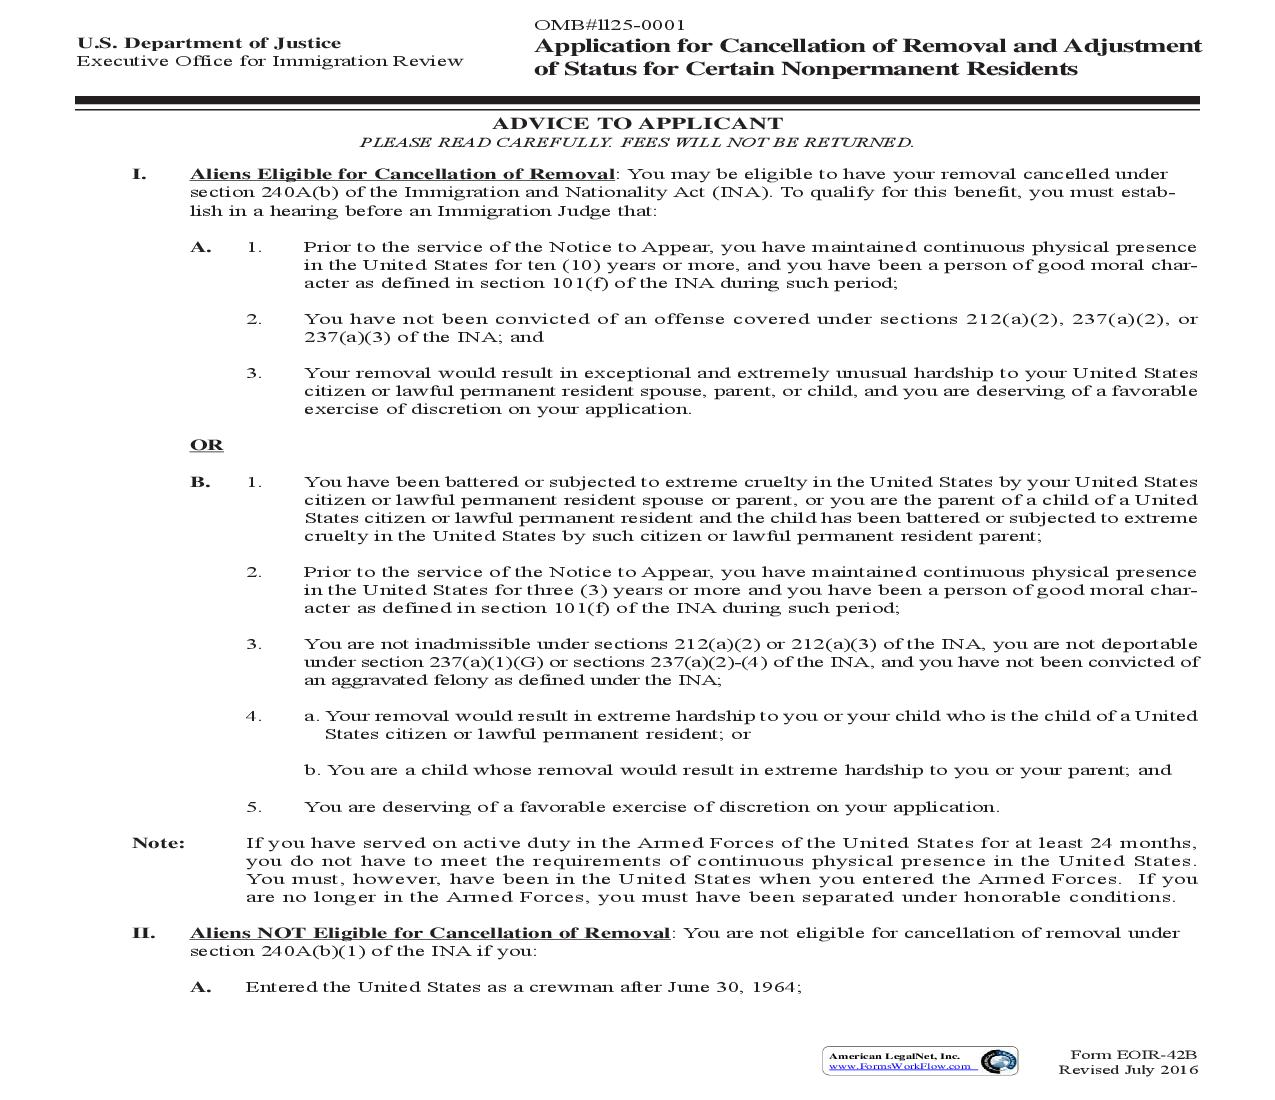 Application For Cancellation Of Removal And Adjustment Of Status For Certain Nonpermanent Residents {EOIR-42B} | Pdf Fpdf Doc Docx | Official Federal Forms